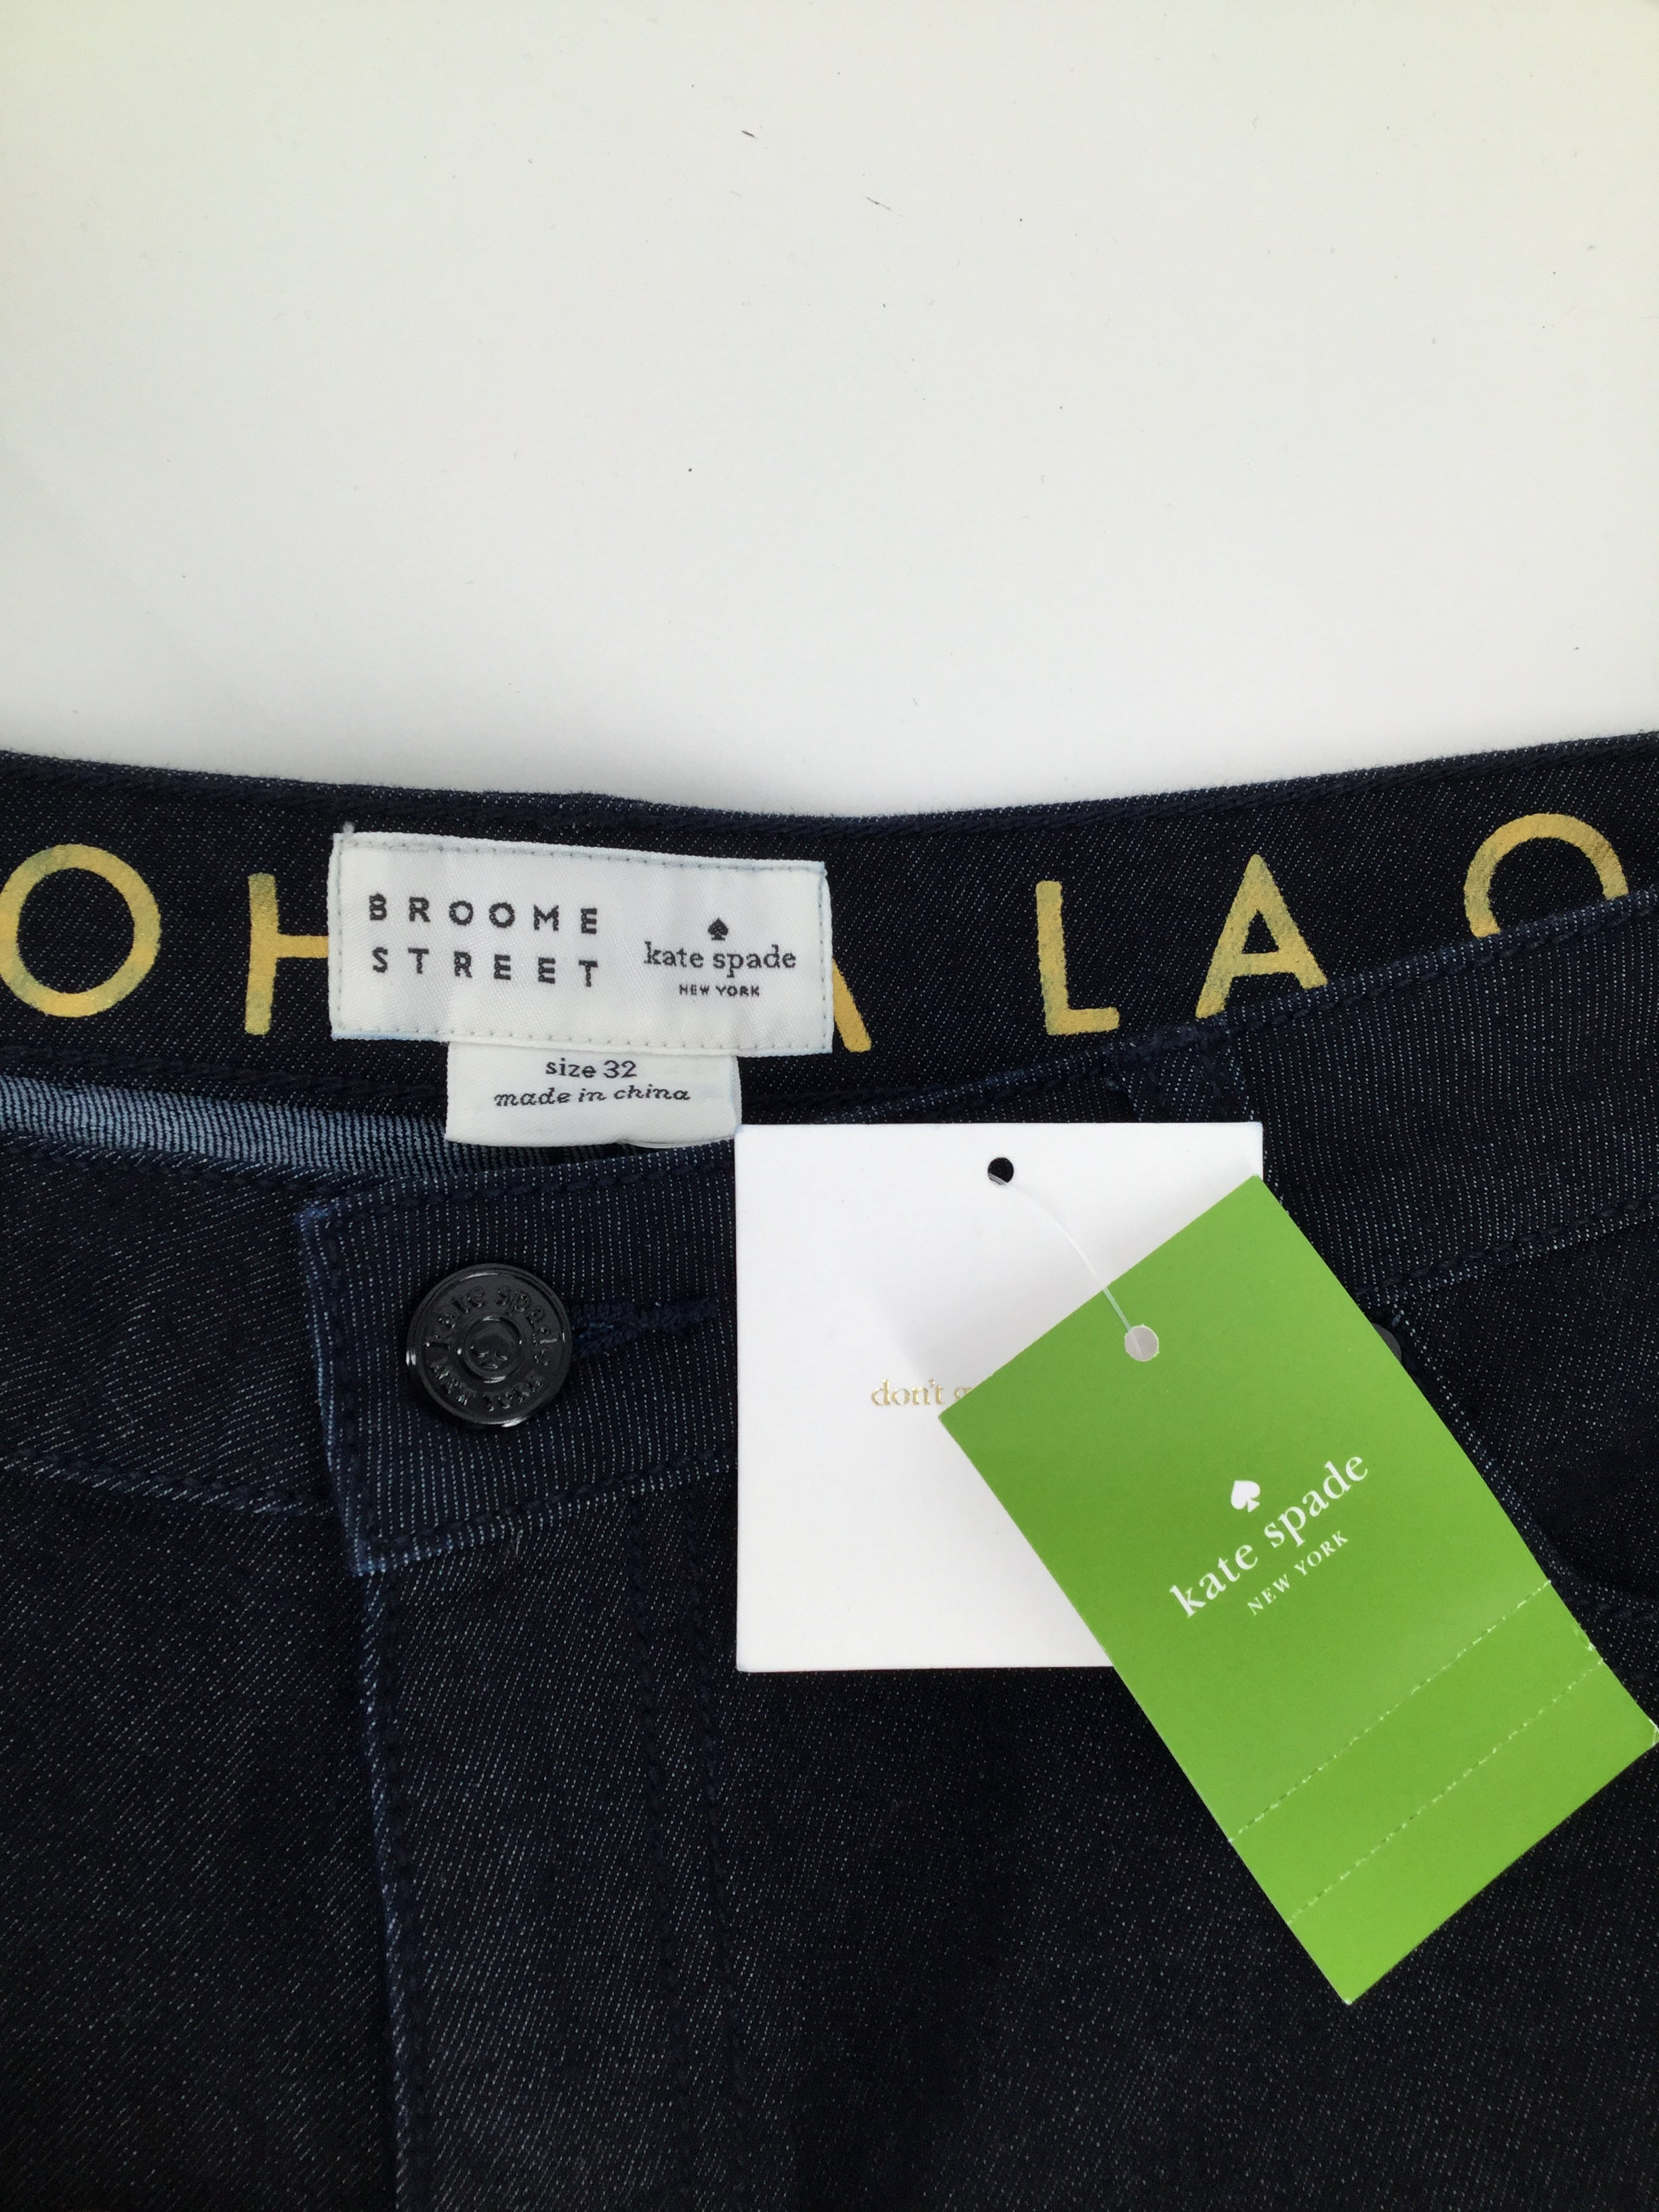 Kate Spade Ankle Pant Size:12 - GORGEOUS DARK BLUE DENIM JEANS. 